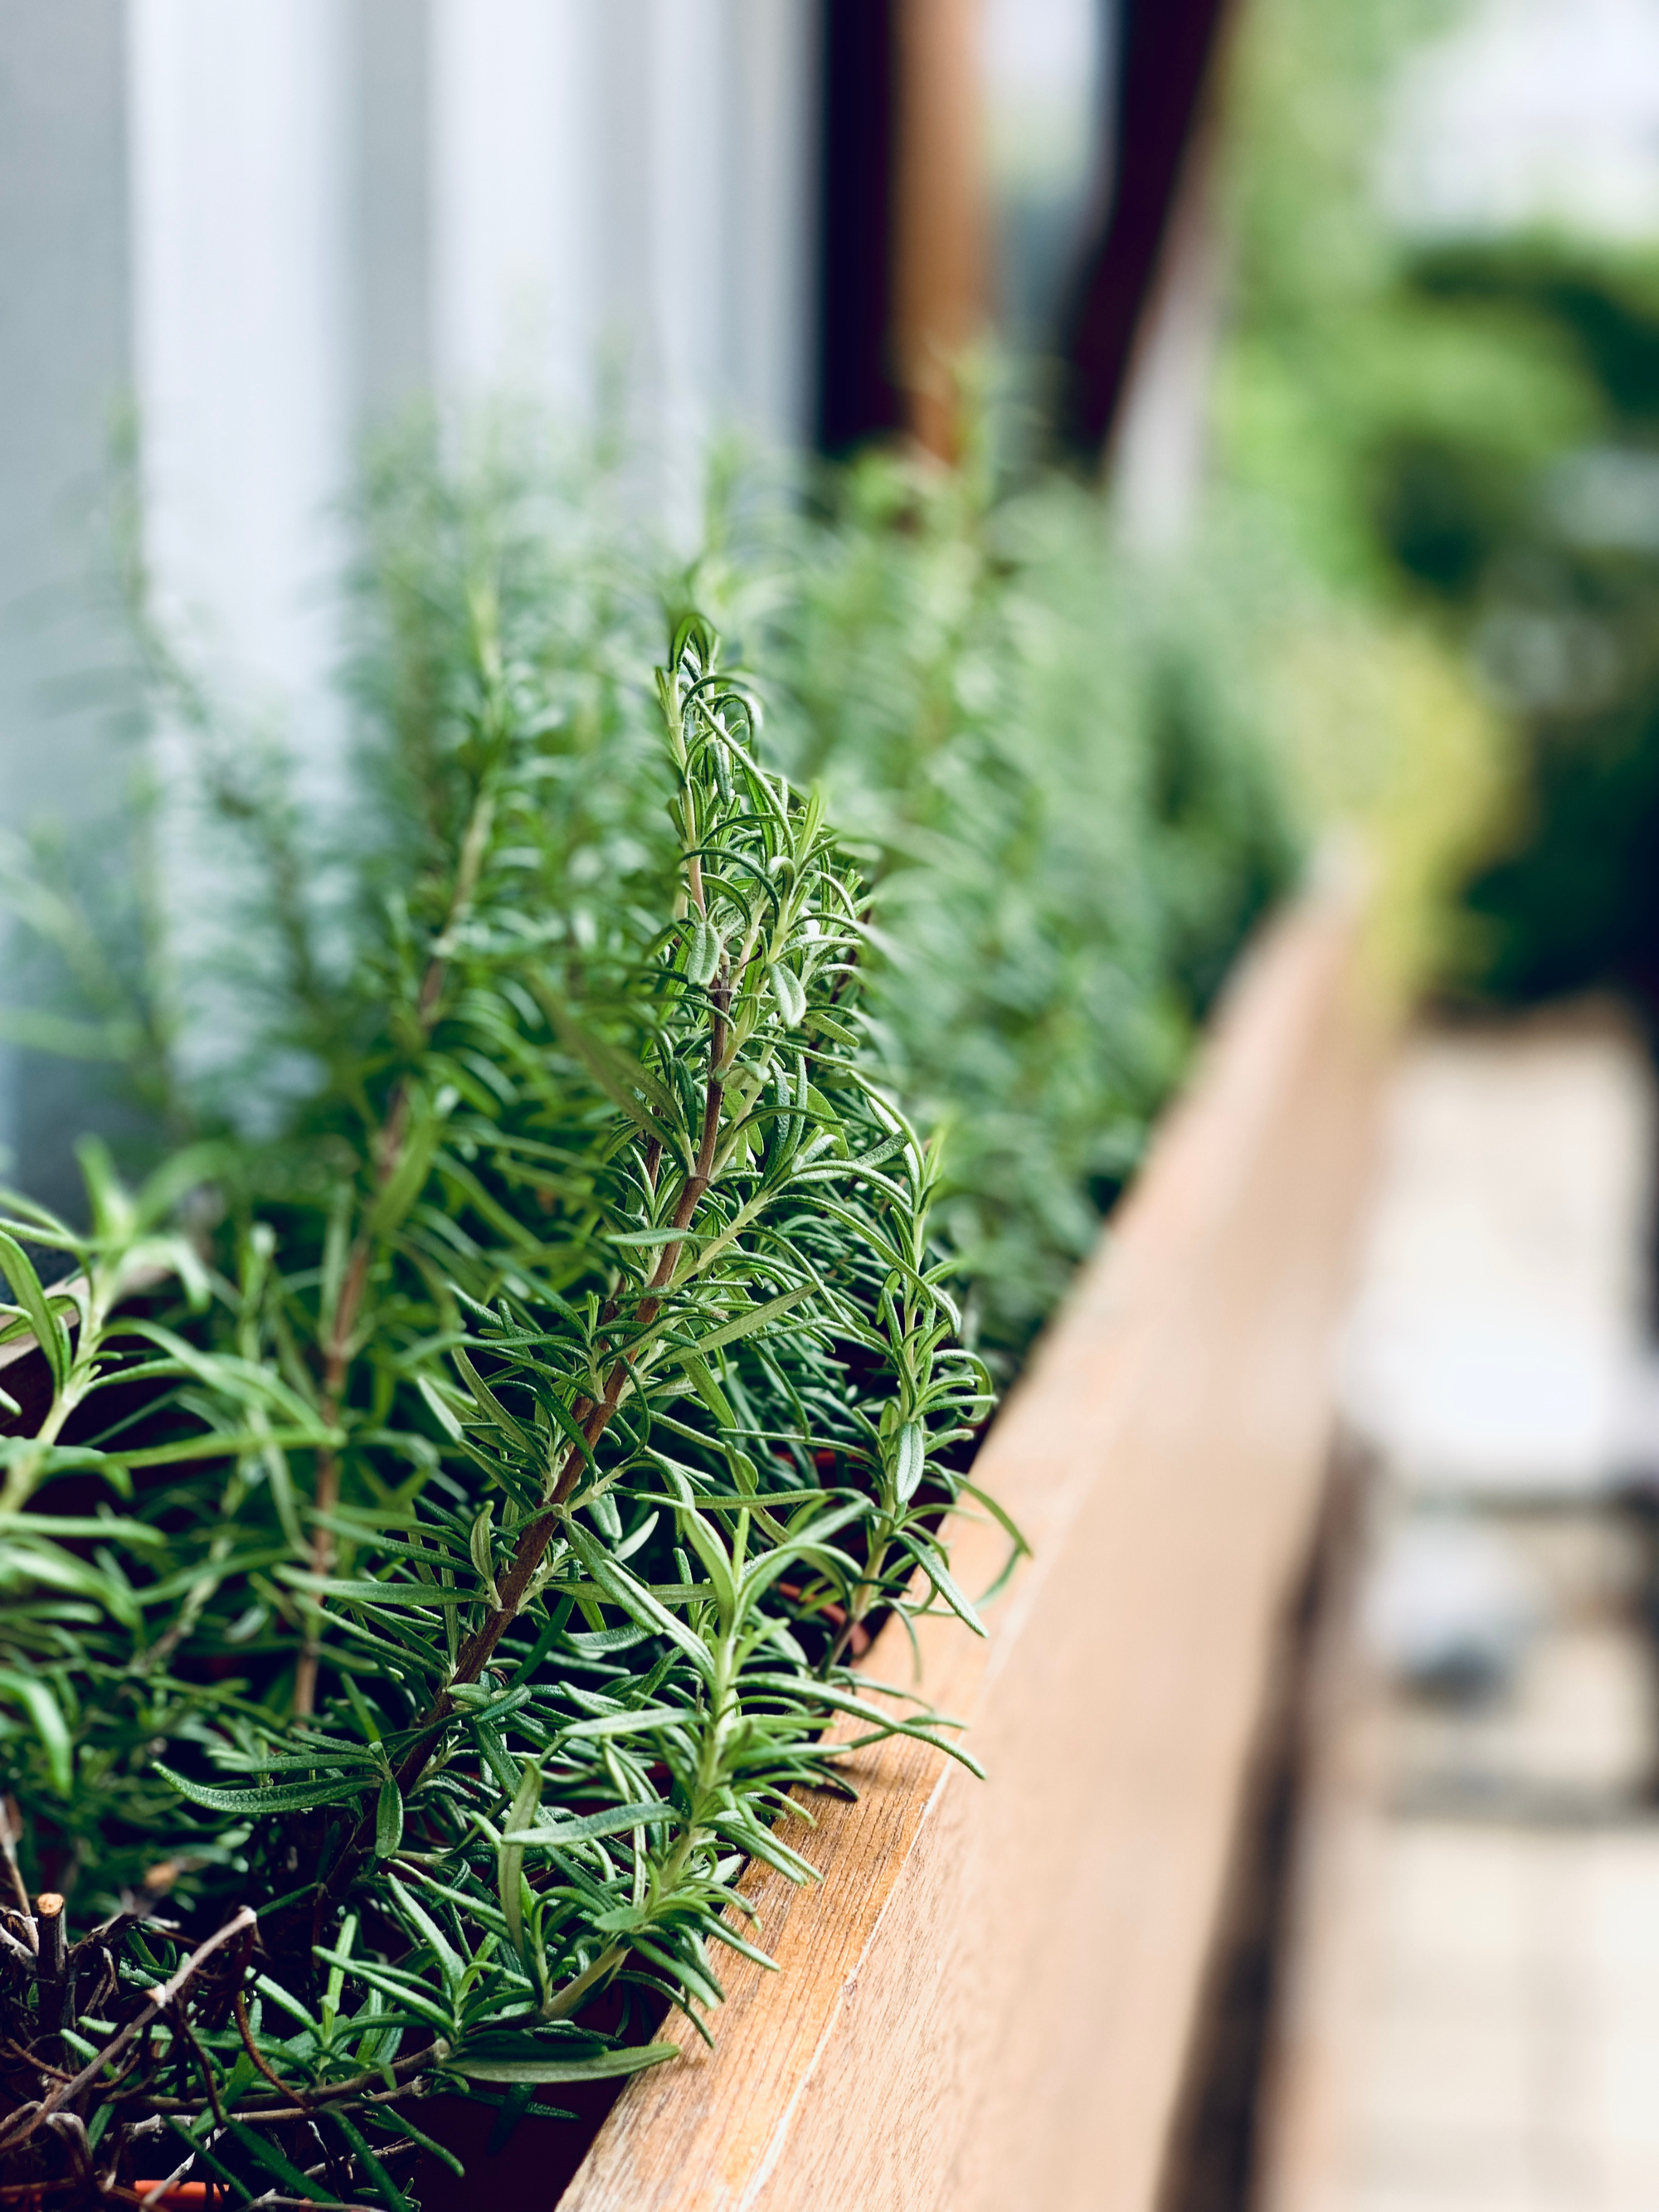 DIY planter boxes | planter box | planter boxes | DIY | garden | yard | DIY planter box ideas | planter box ideas | how to